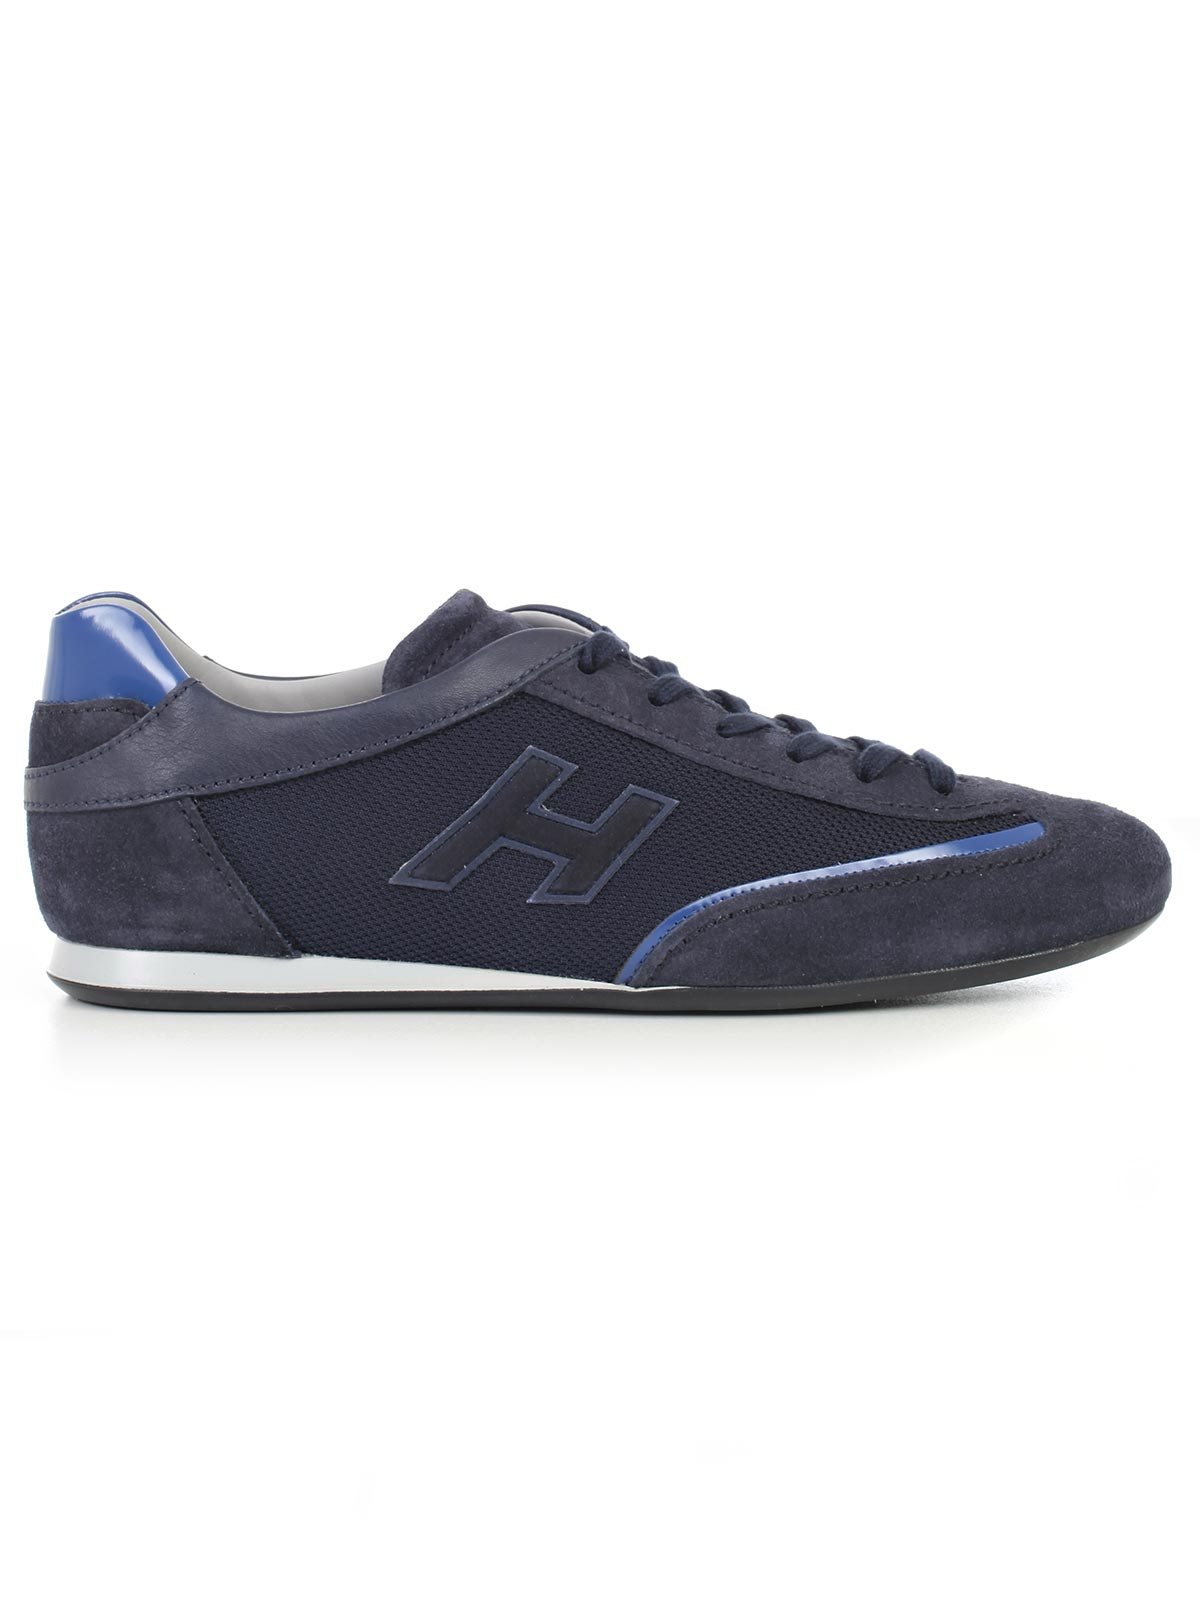 Picture of HOGAN FOOTWEAR SCARPA OLYMPIA